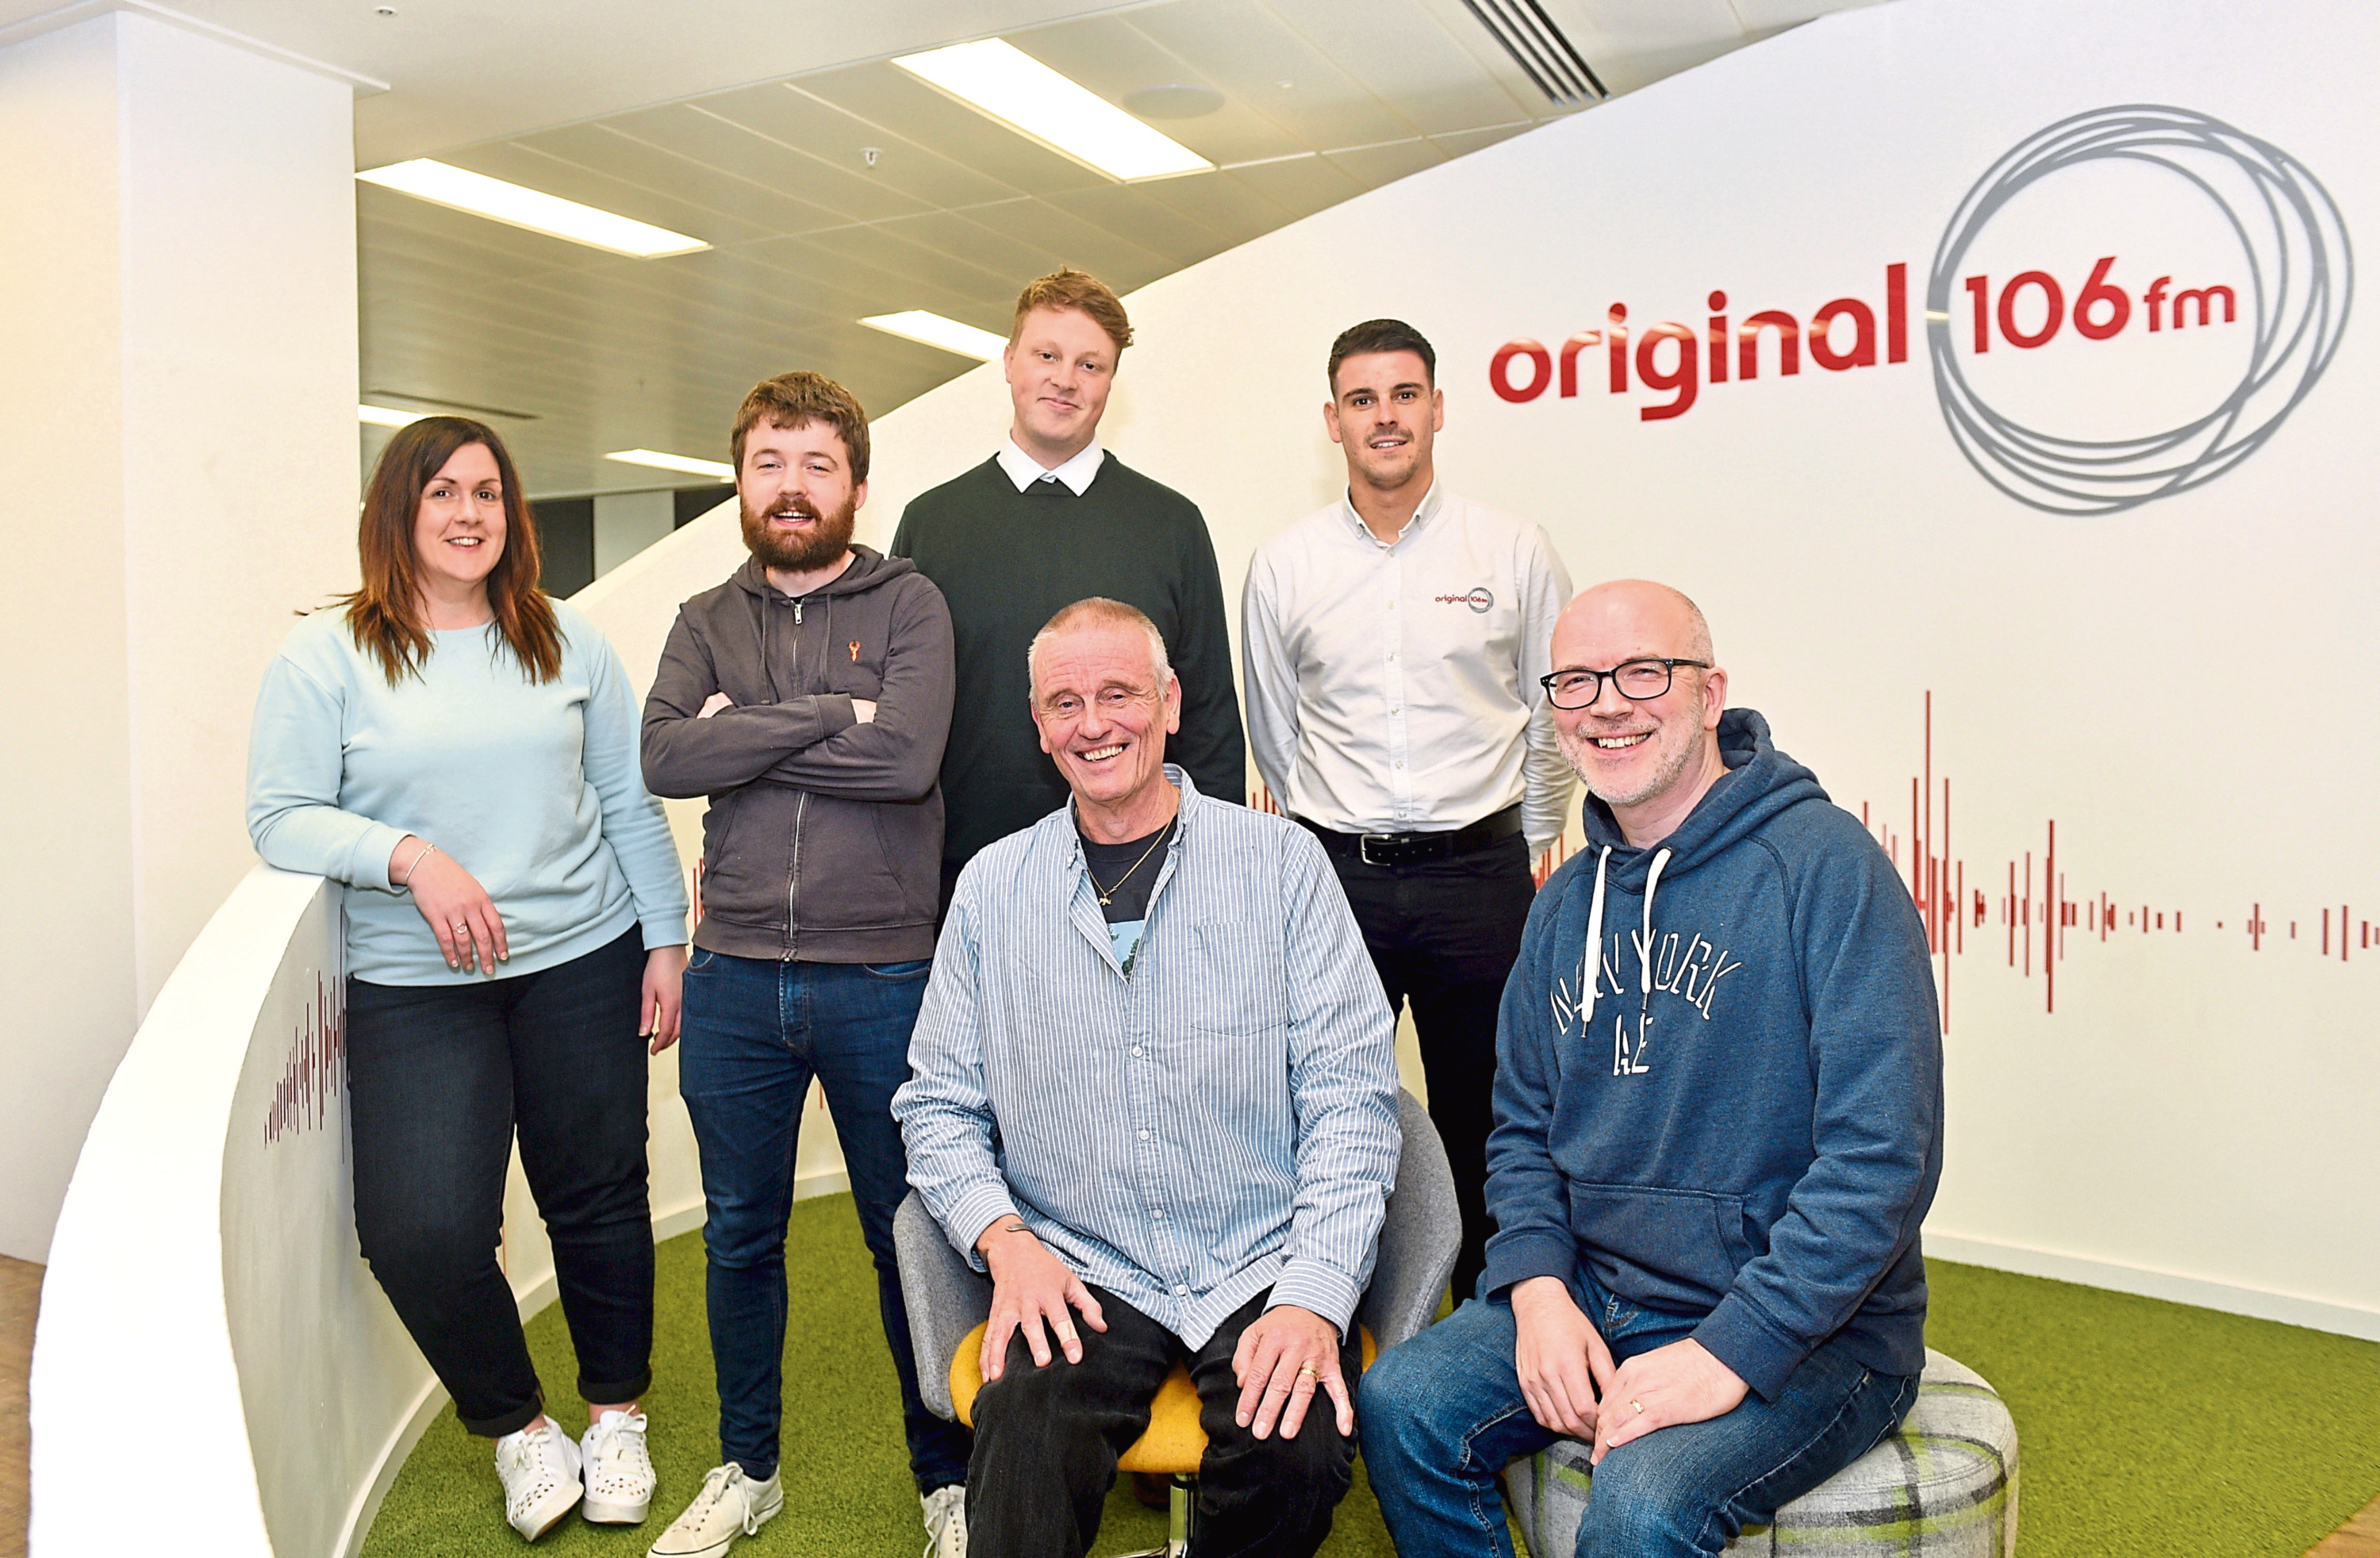 Original 106 have launched their Christmas appeal